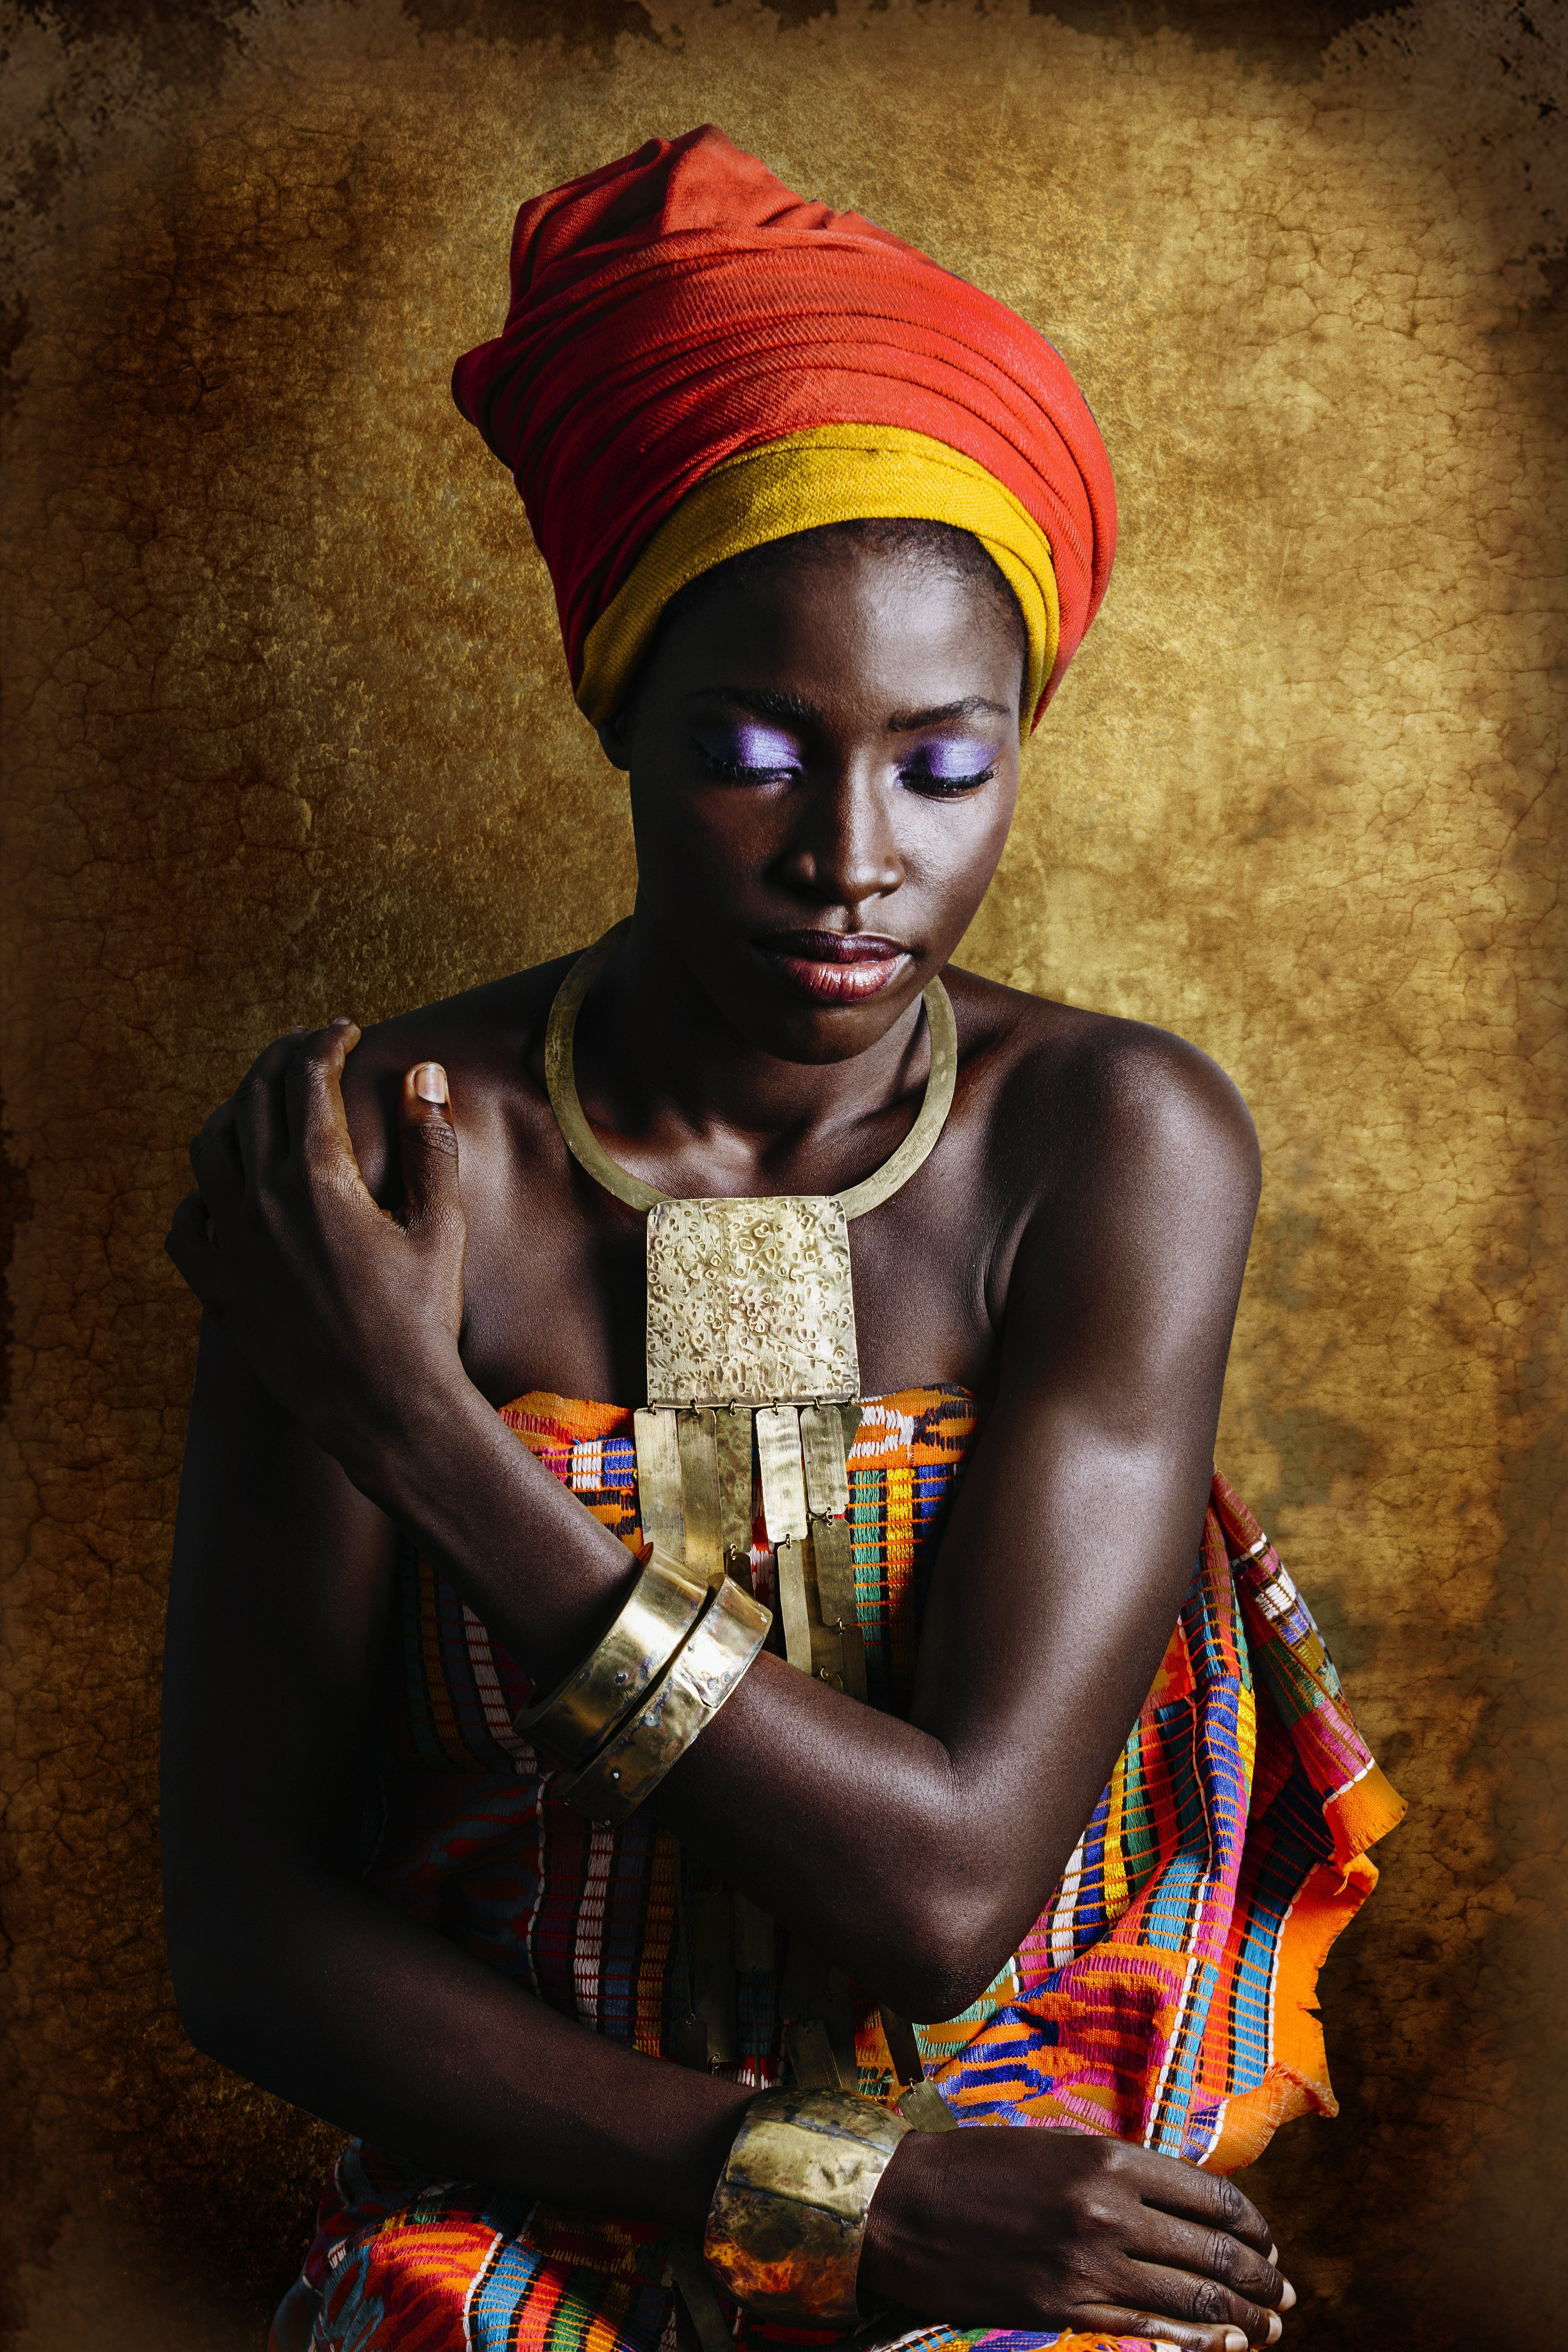 Handmedown African women in their grandmothers' clothes   in pictures is part of Clothes Photography Articles - Joana Choumali's portraits show modern African women swapping jeans for kente cloth   and diving into the dazzling cultural heritage of their families